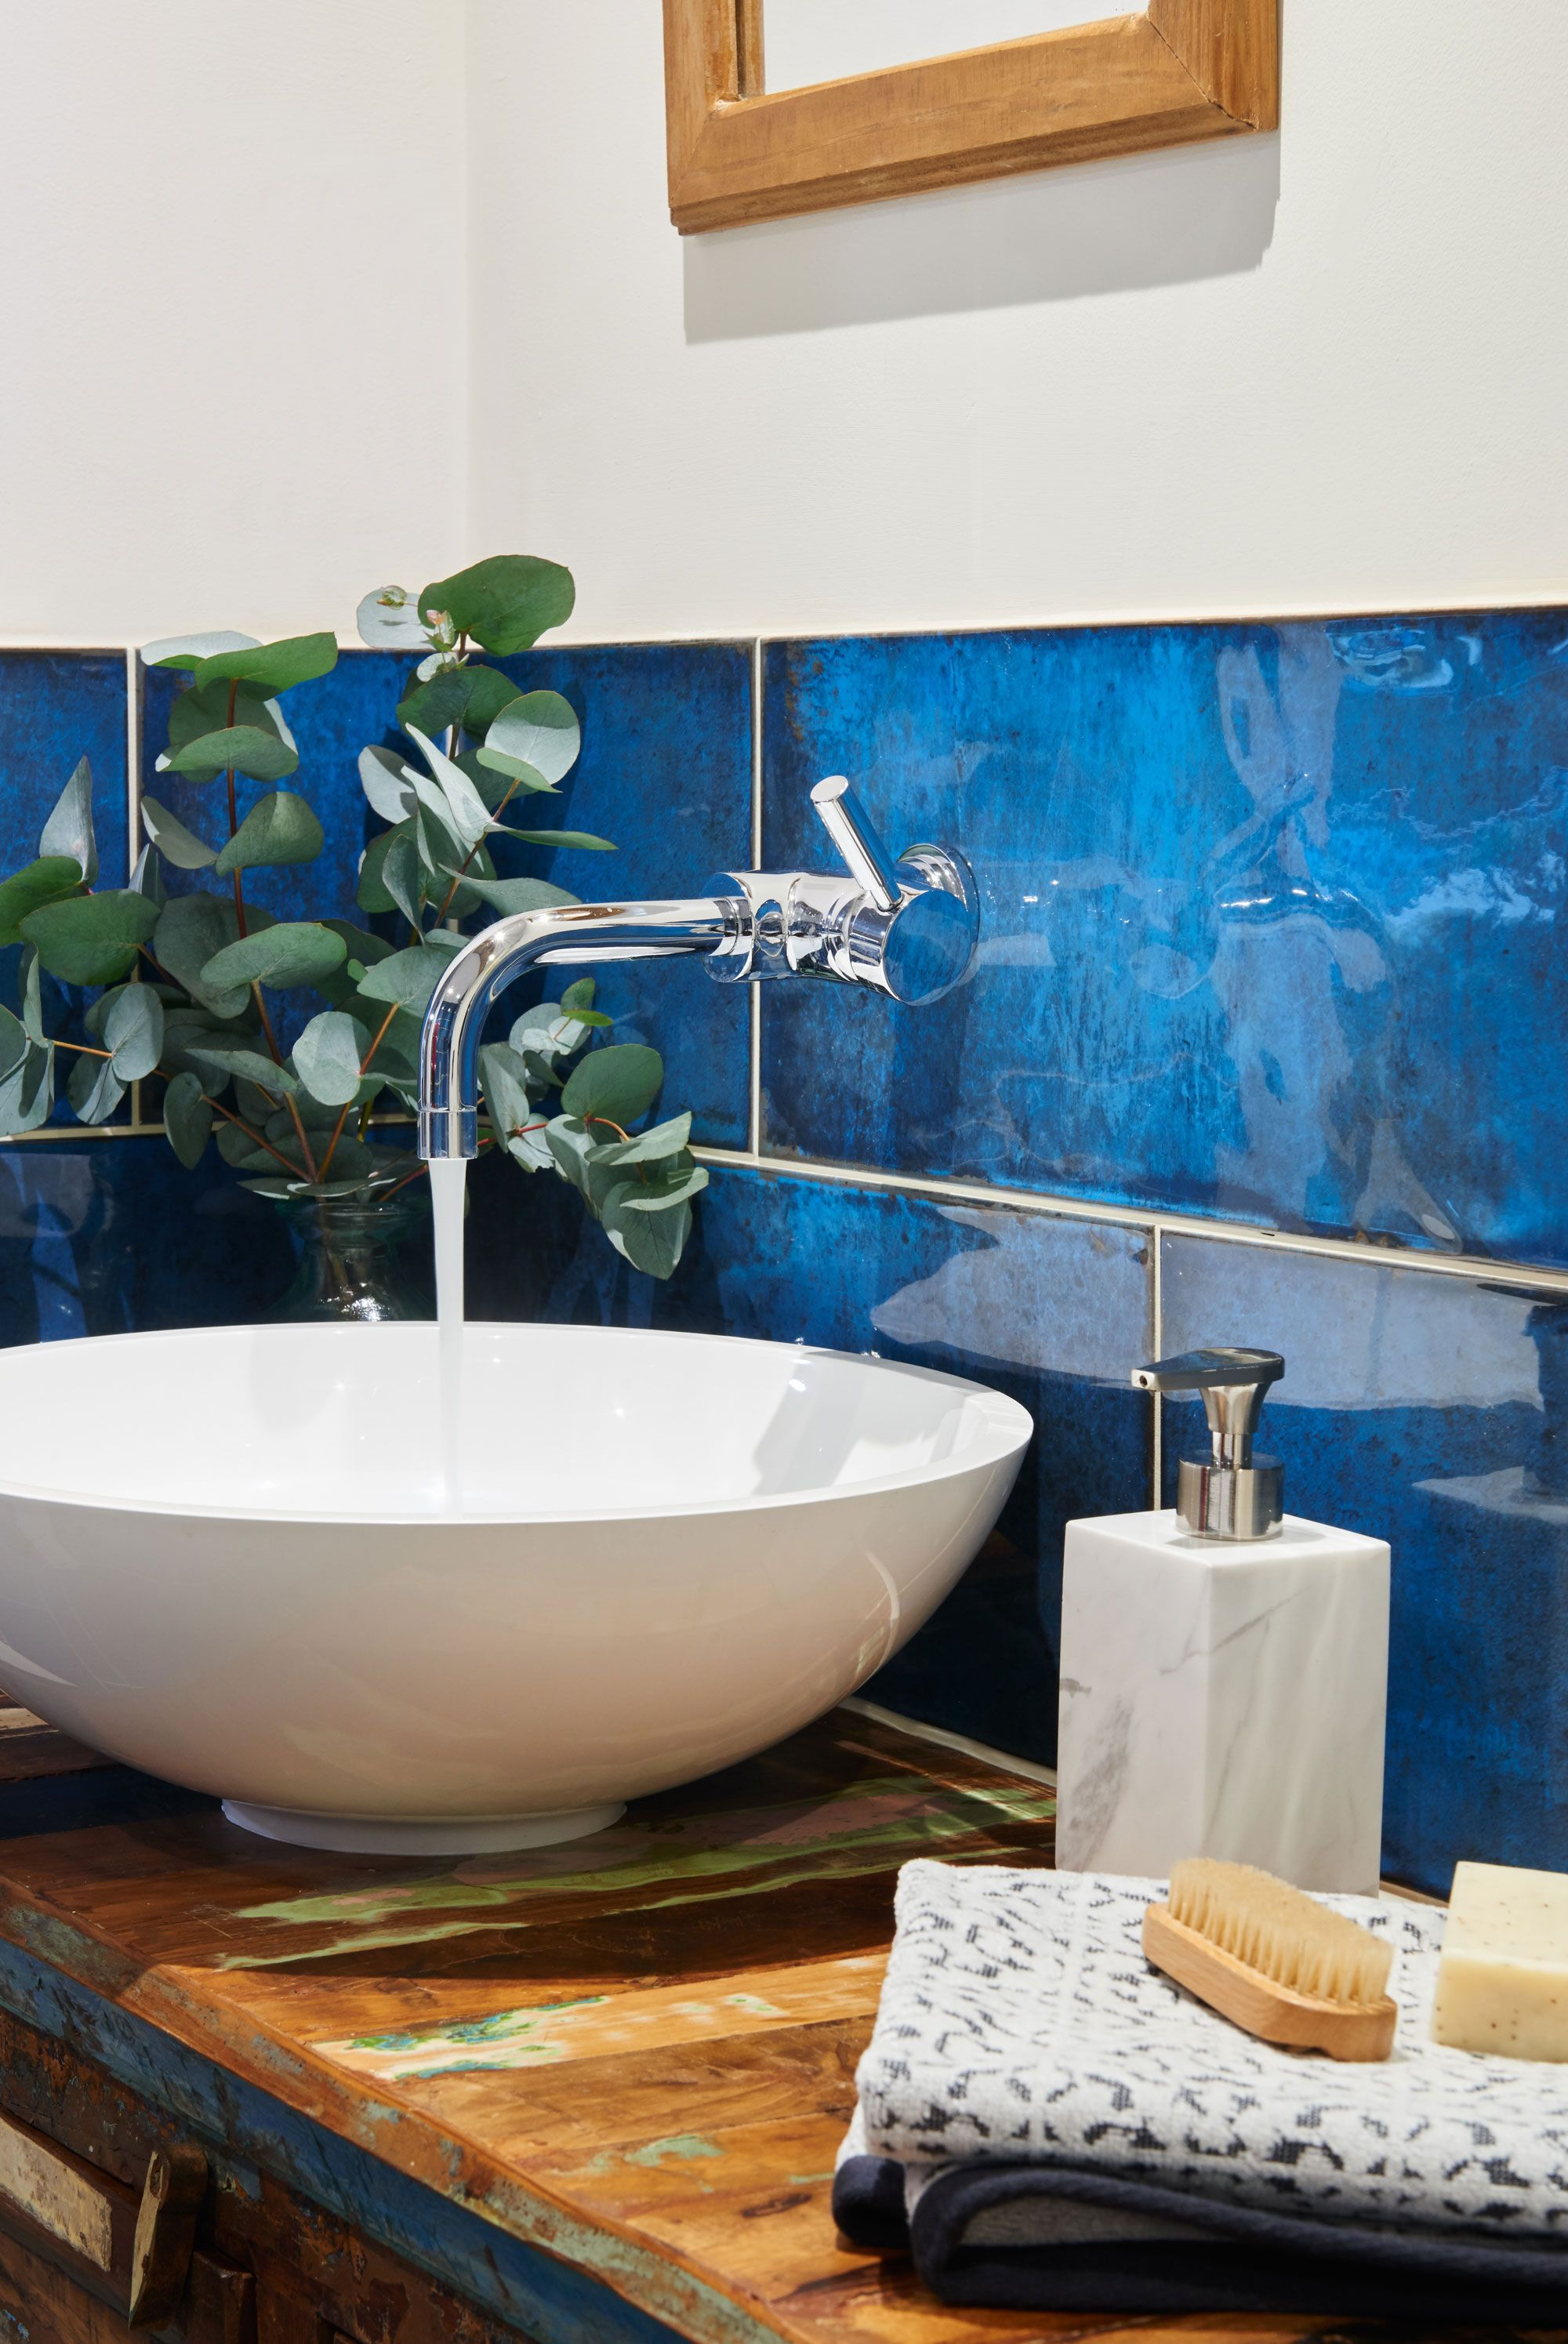 Montblanc Blue Ceramic Tile in 2018 | Bathroom Ideas | Pinterest ...